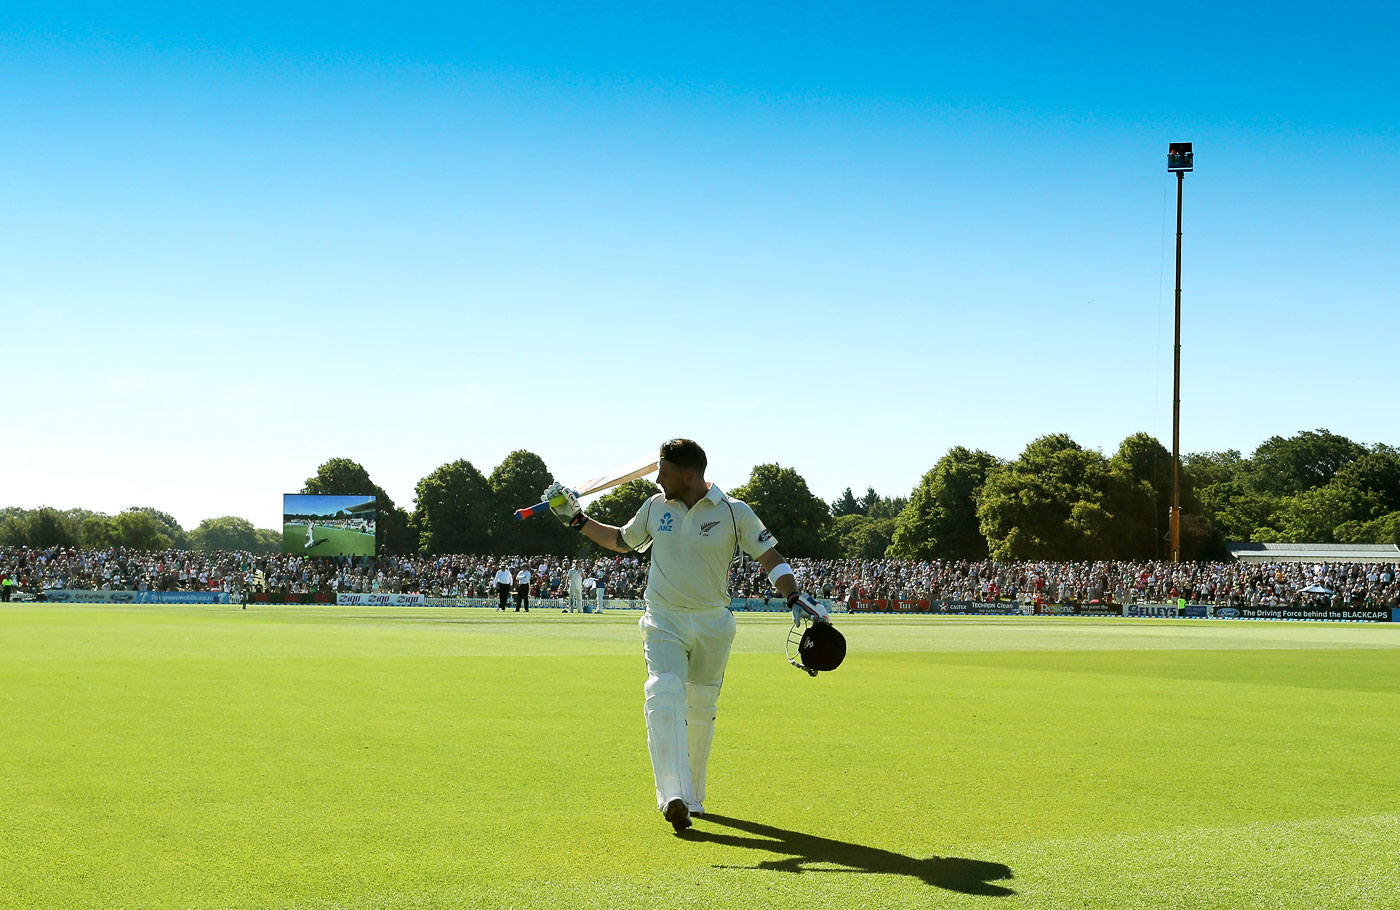 2014: Christchurch's first Test in eight years was a joyful celebration, largely owing to McCullum's brand of cricket